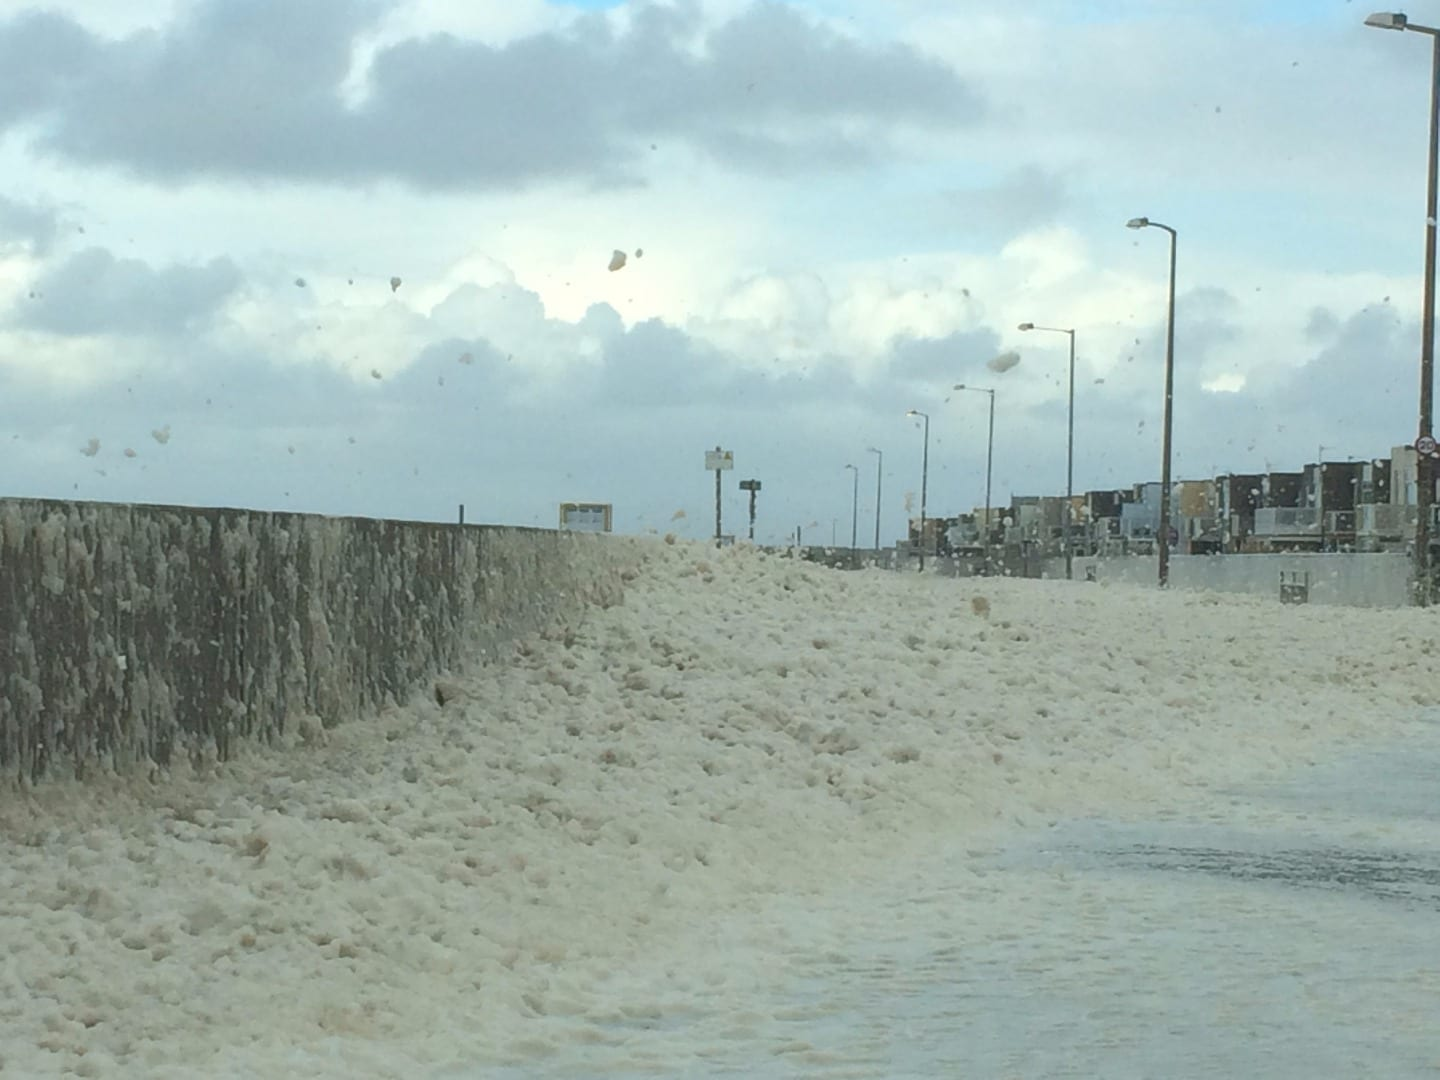 Sea foam piled up on Rossall Promenade at Cleveleys